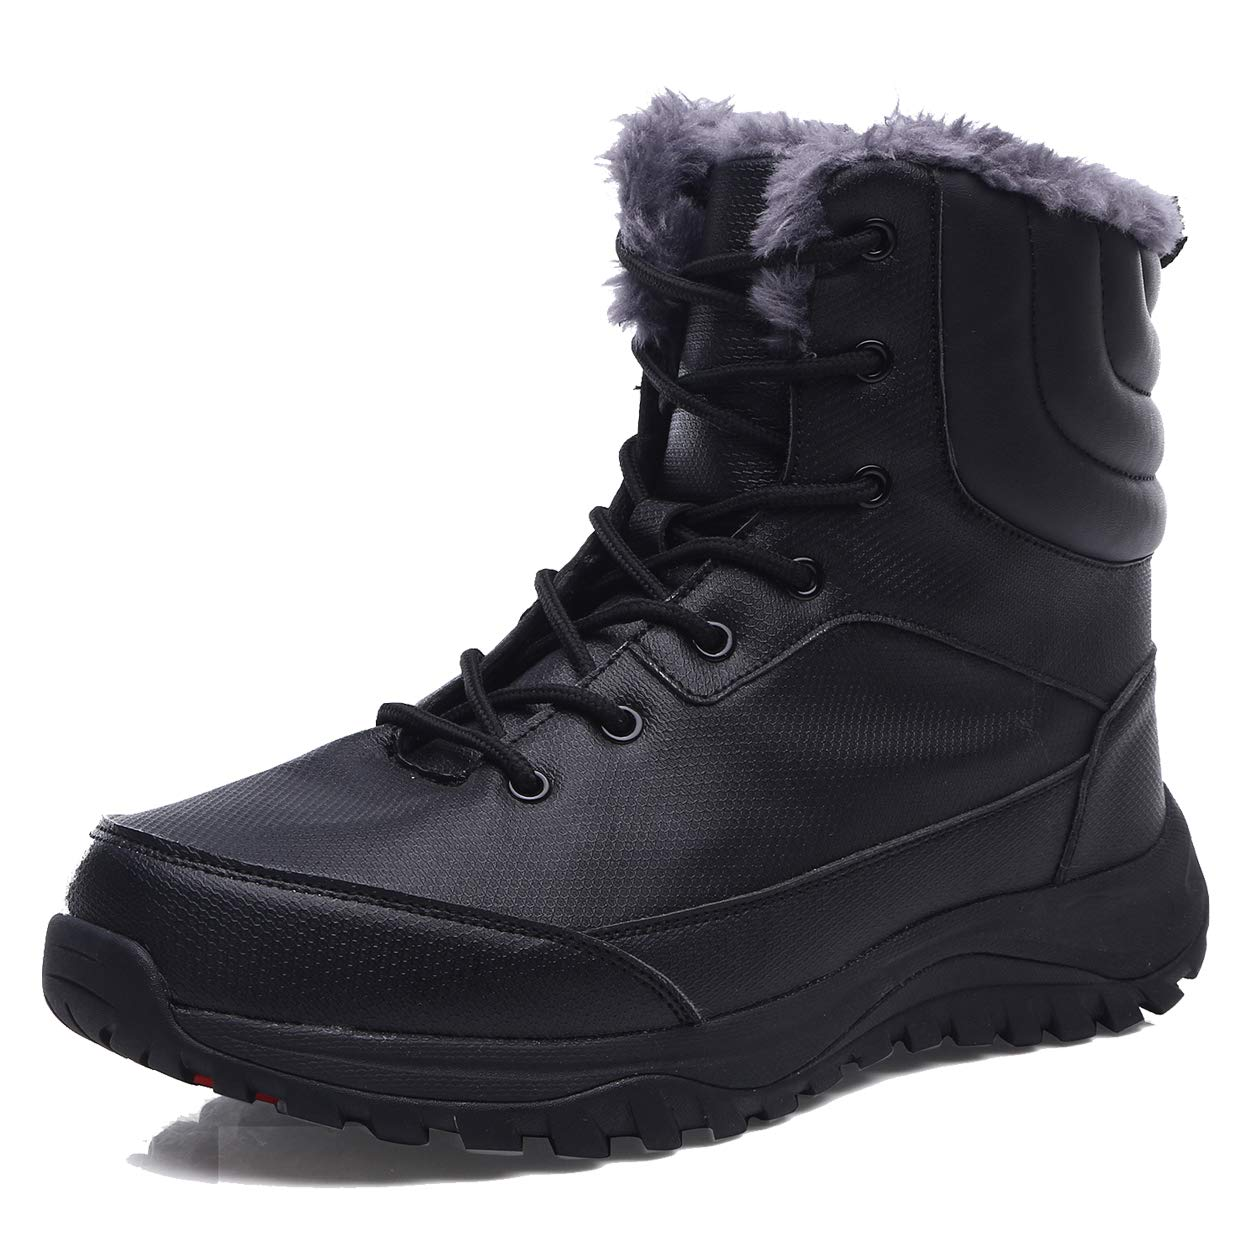 EXEBLUE Men's Waterproof Hiking Boot Winter Snow Boots Outdoor Mid Ankle Boots Lace up for Backpacking Working Adventure Black by EXEBLUE